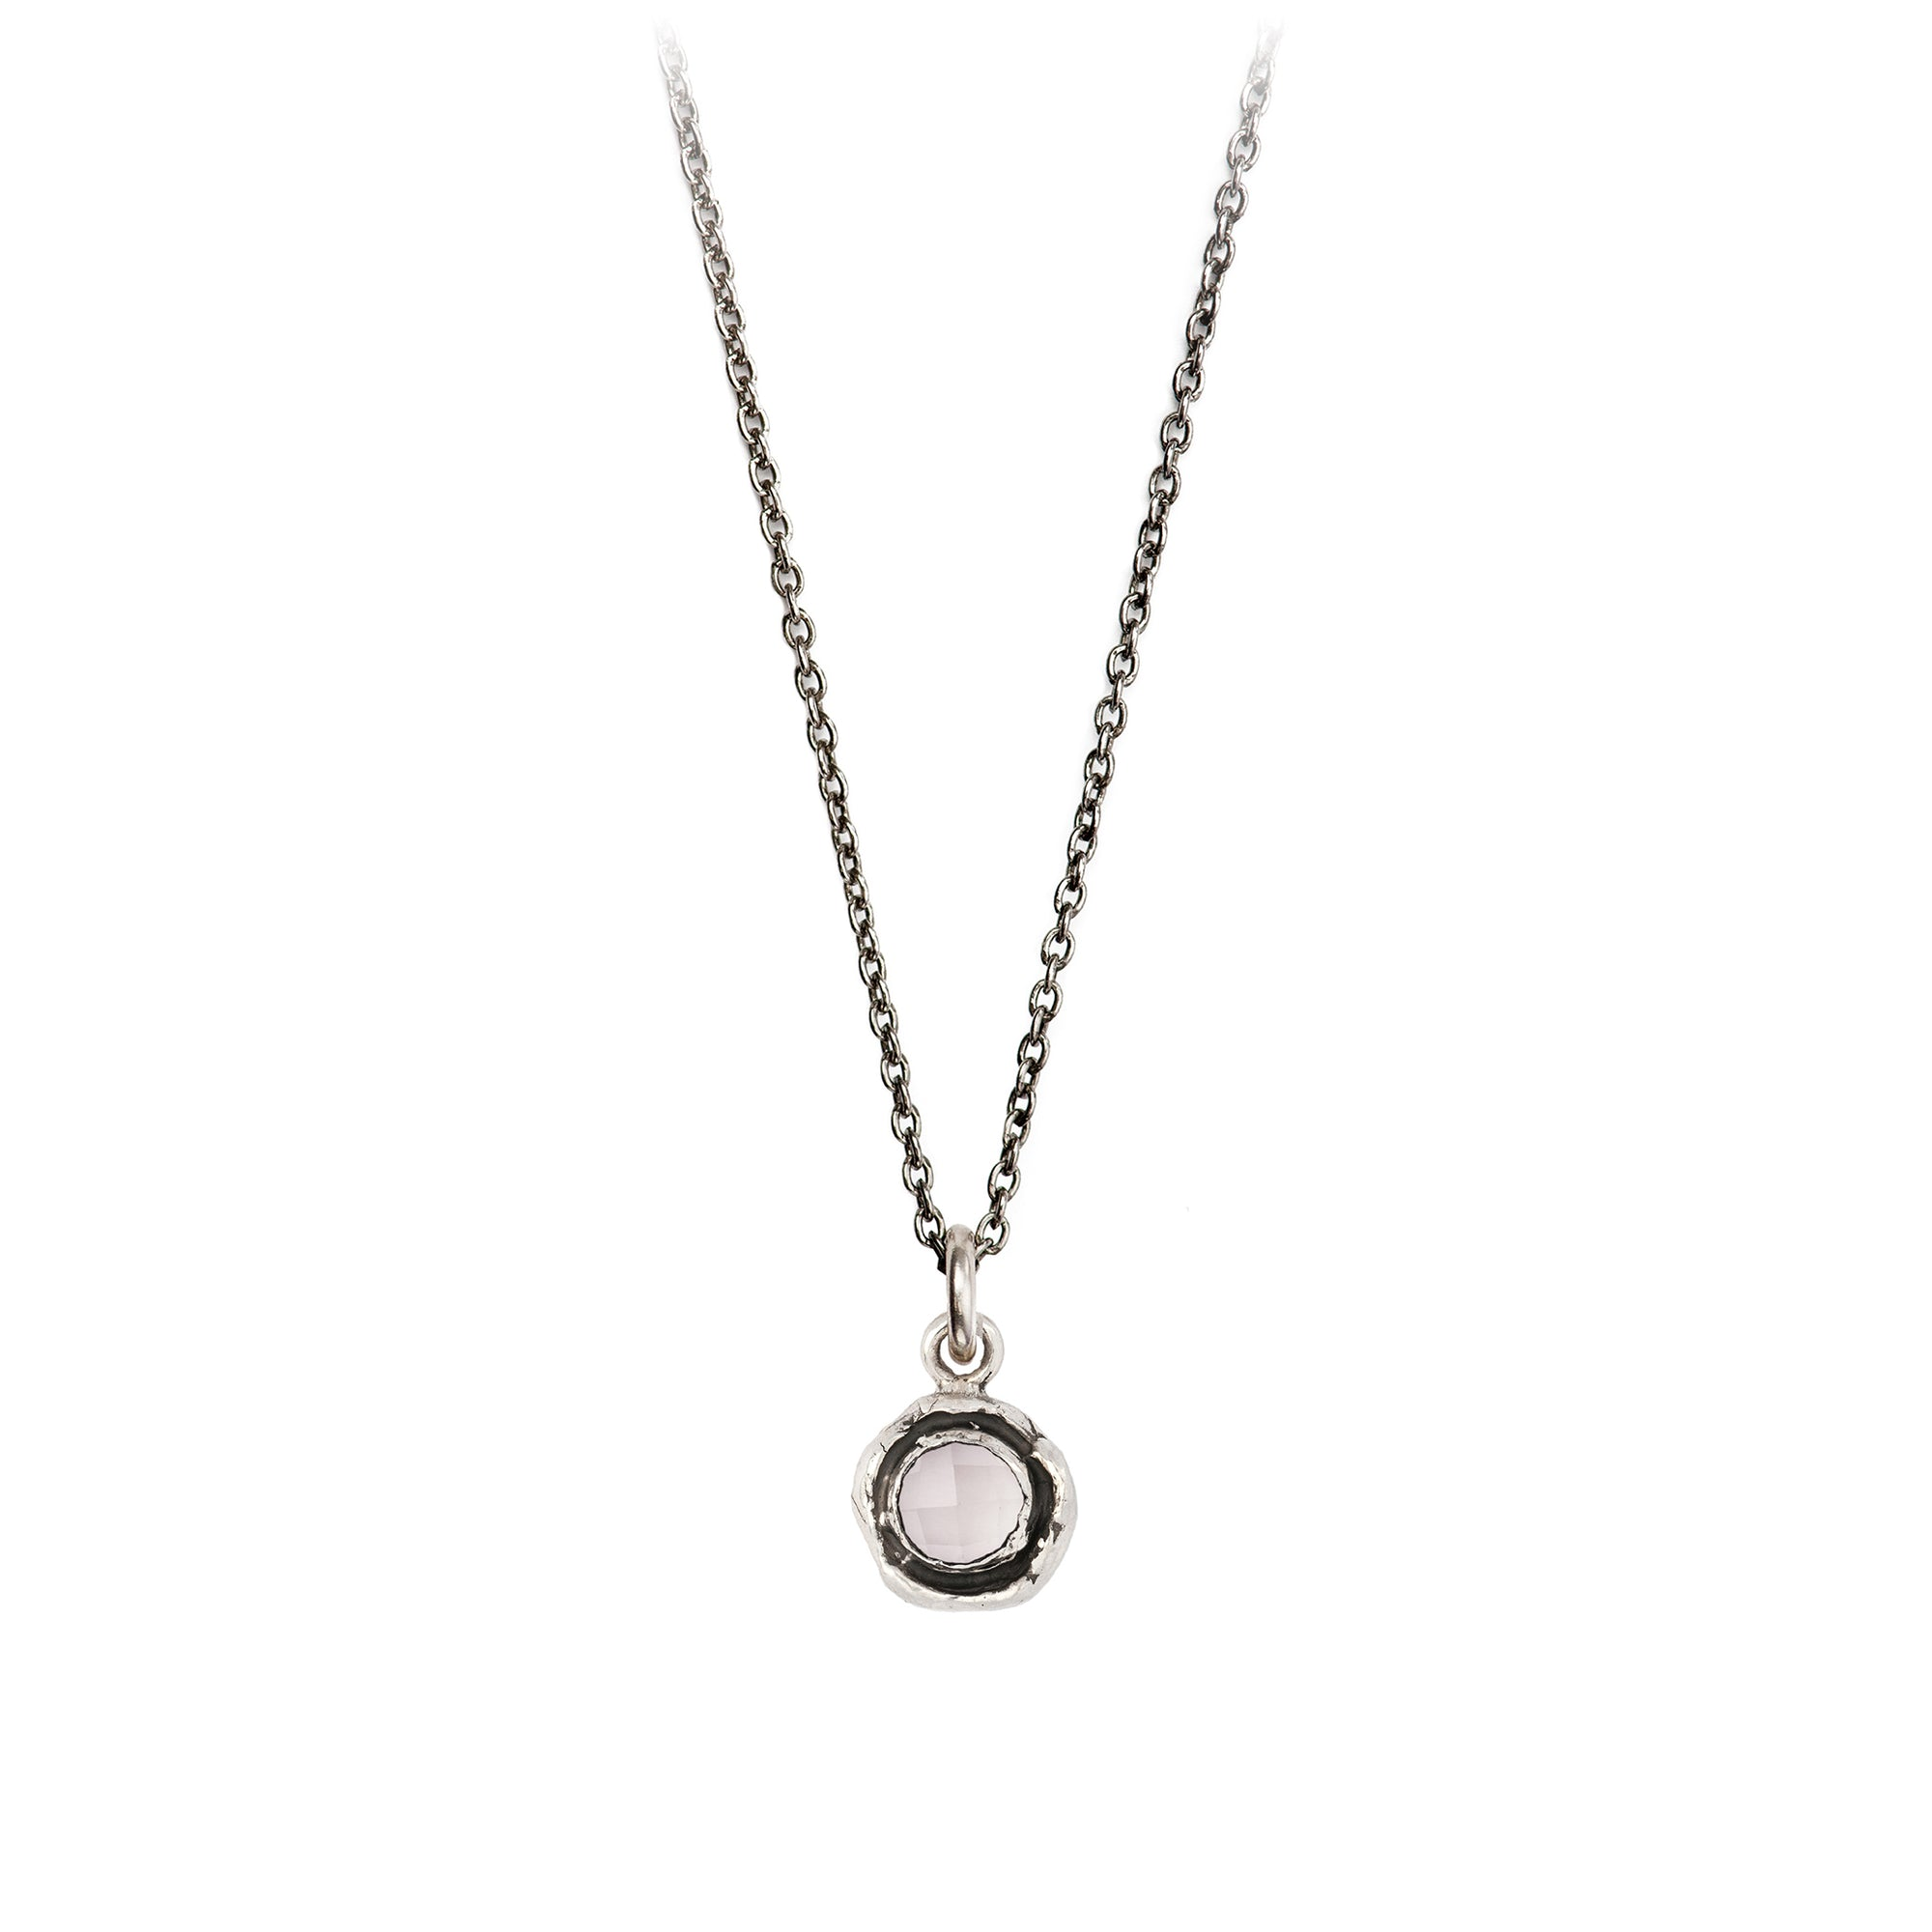 Pyrrha  Small Rose  Quartz Faceted Stone Talisman Necklace Silver